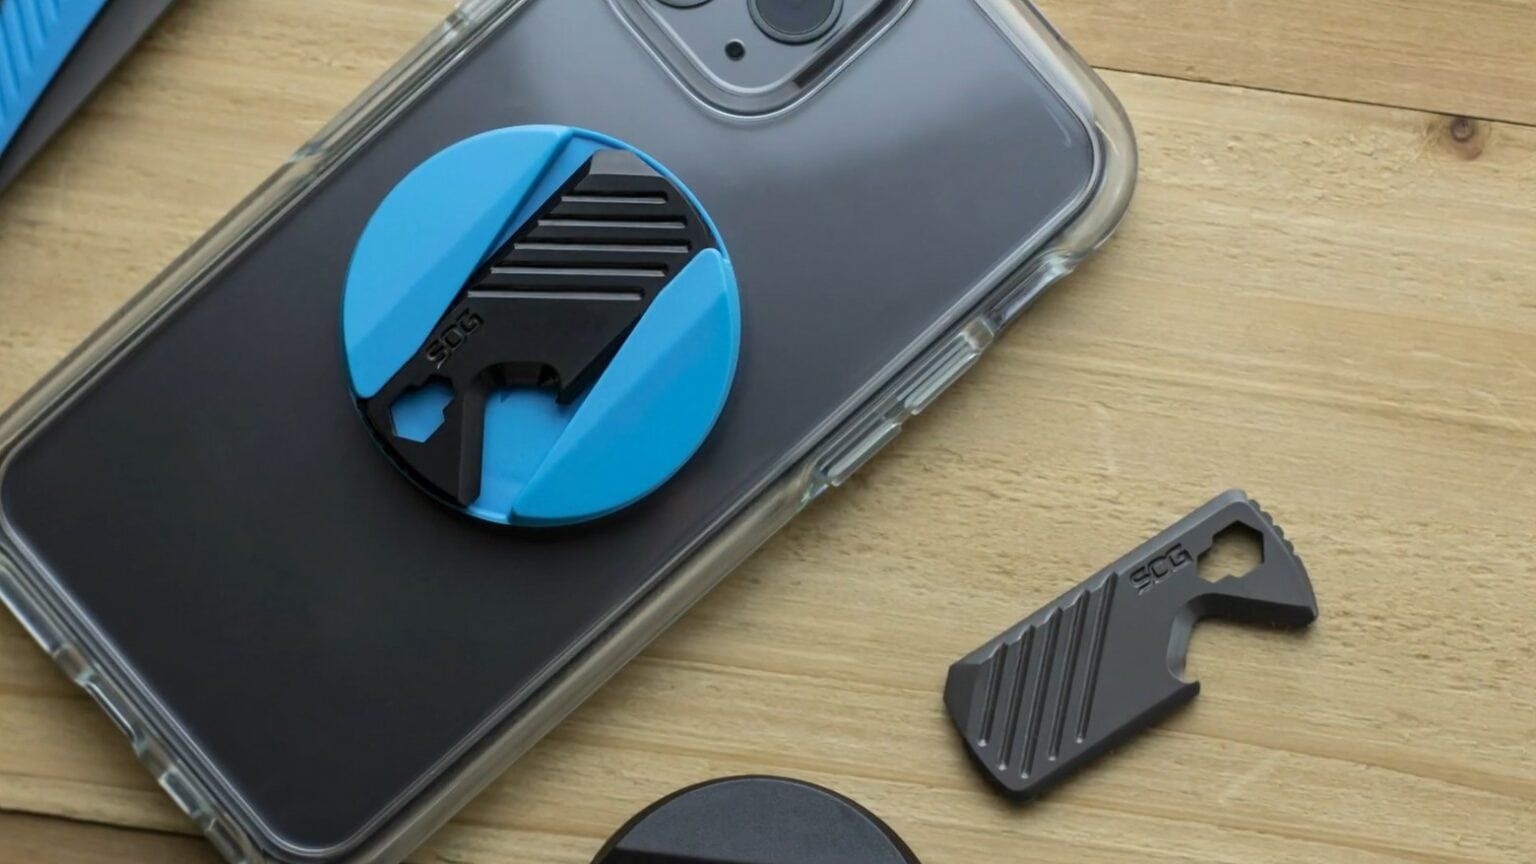 The PopGrip SOG Multi-Tool attaches a handy 5-in-1 multitool and grip to your iPhone.